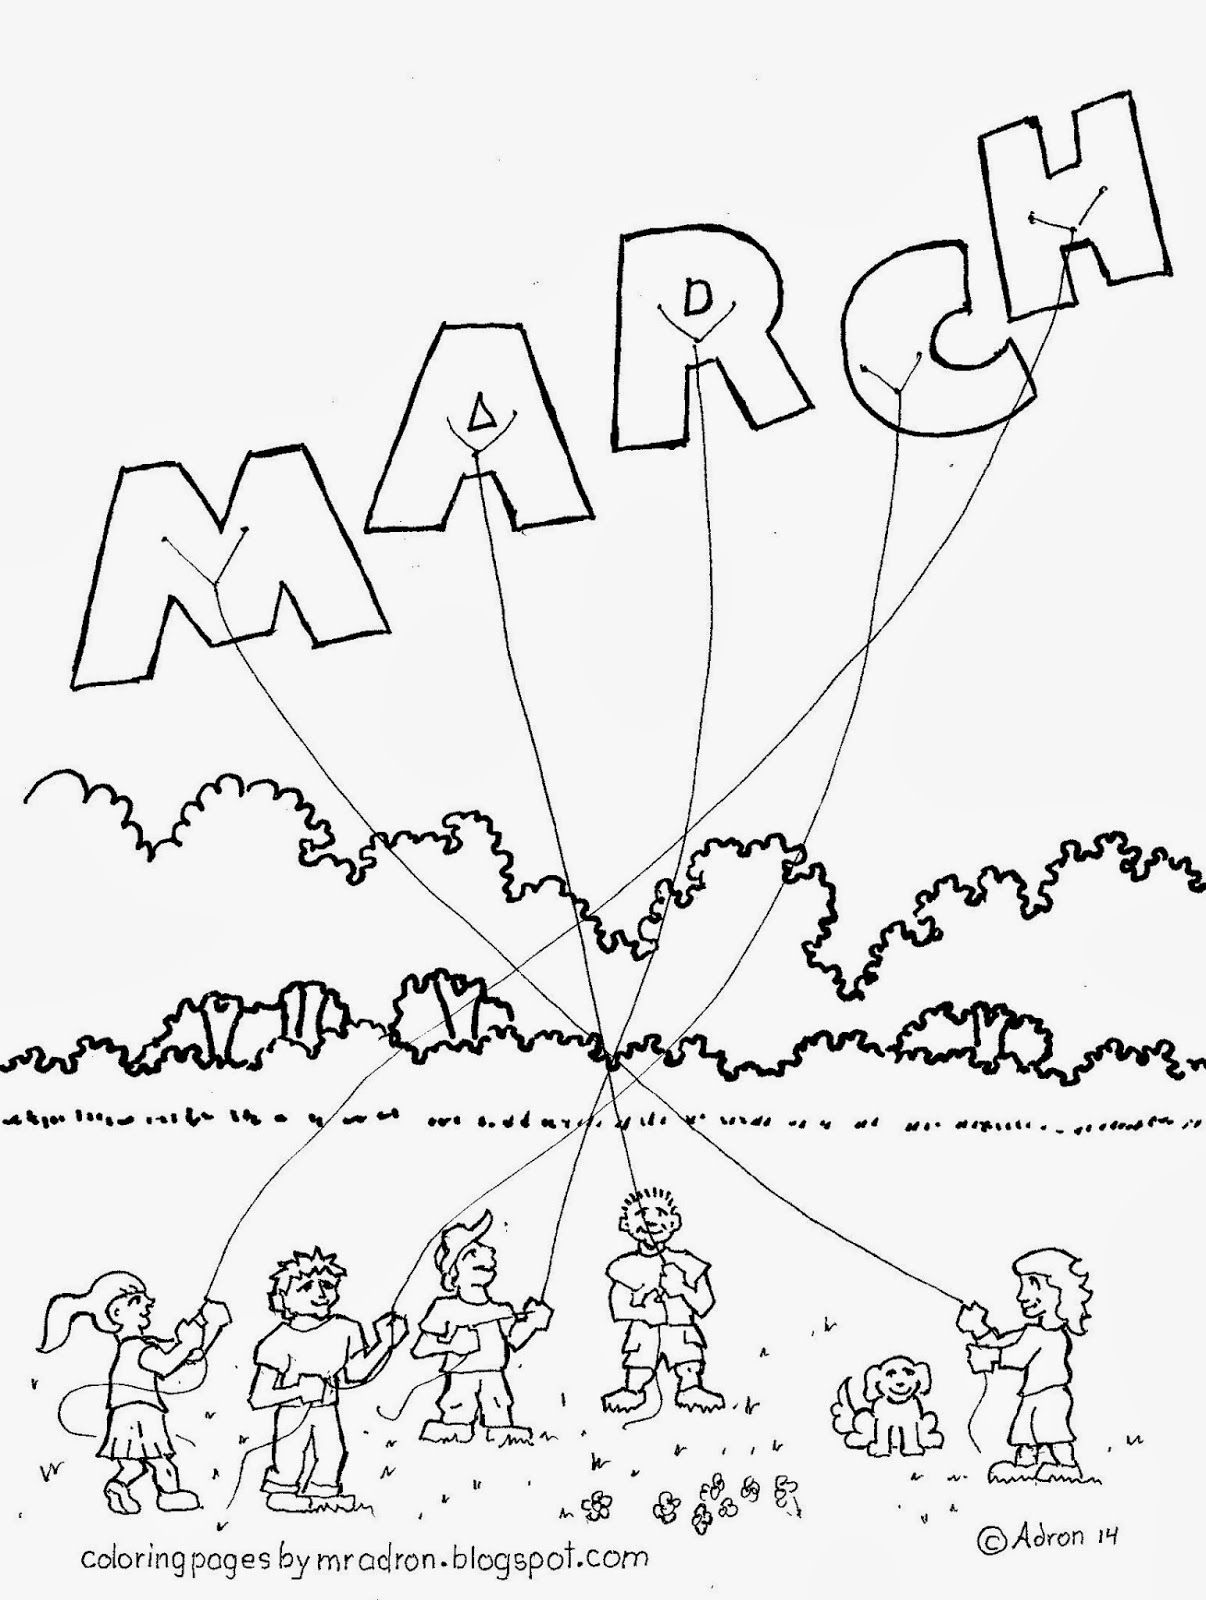 Coloring Pages For Kids By Mr Adron Month Of March Free Coloring Page For Kids Coloring Pages For Kids Free Coloring Pages Ninjago Coloring Pages